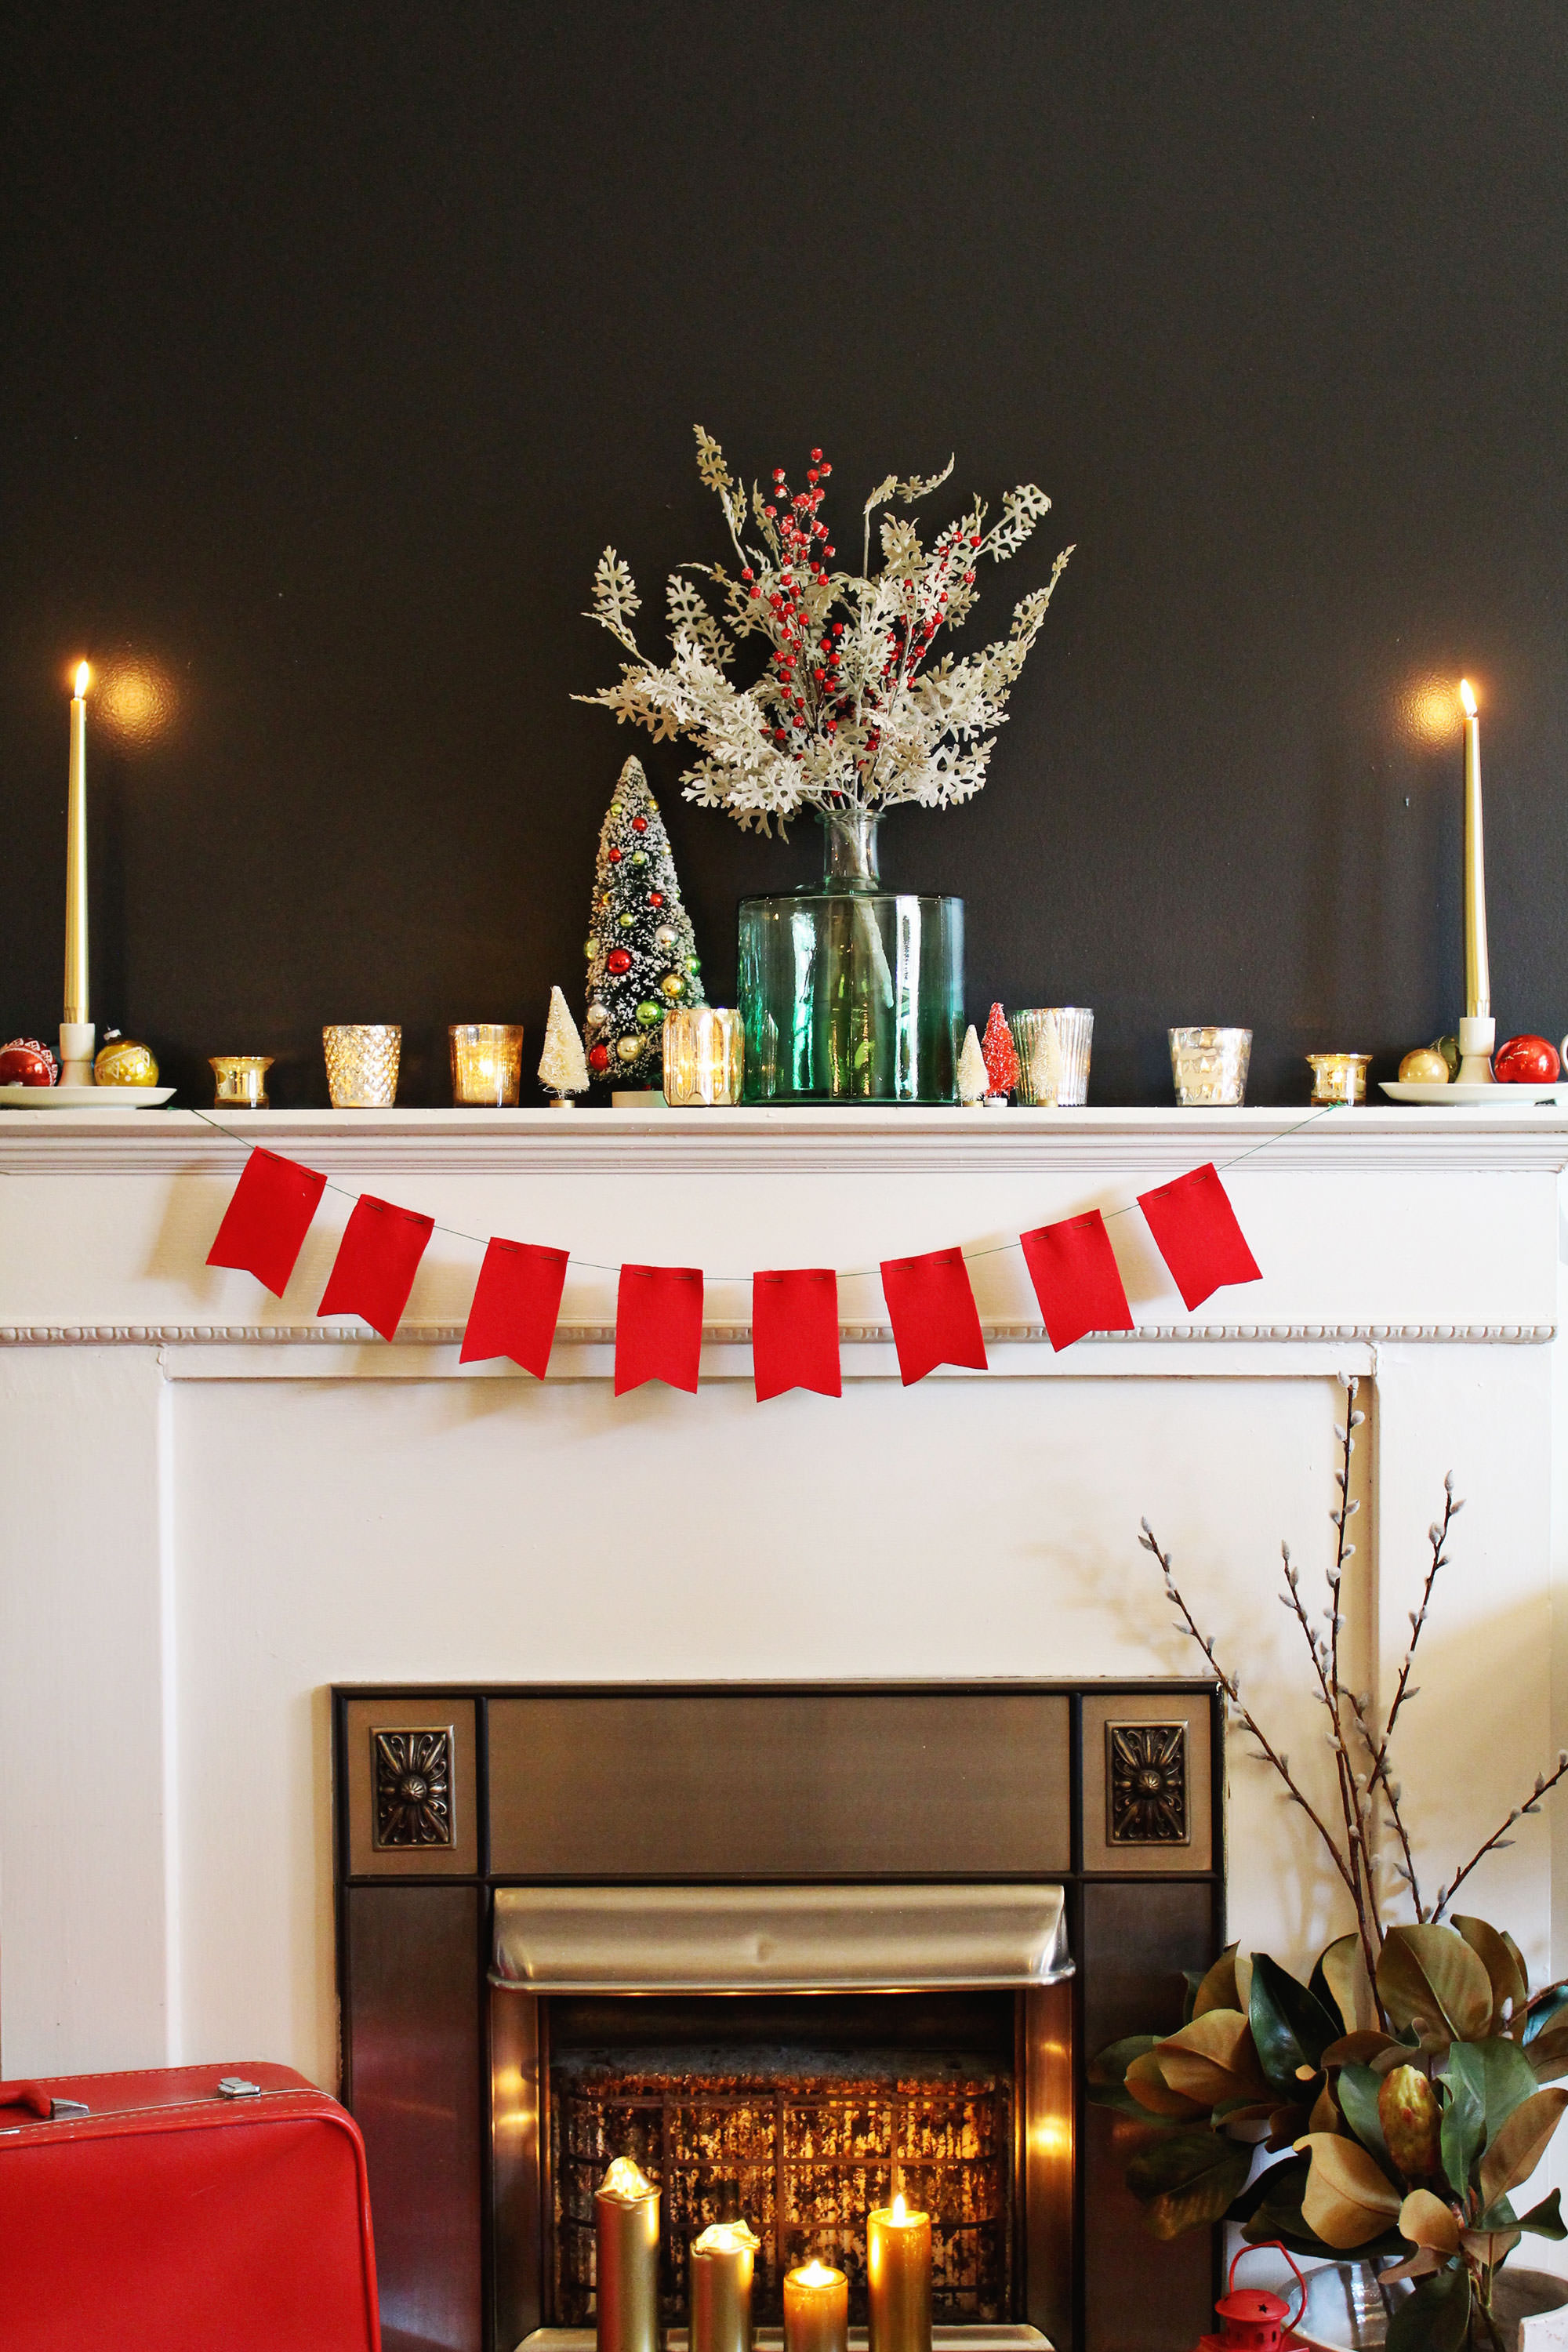 Holiday mantel styling tips from a professional stylist on Lily and Val Living